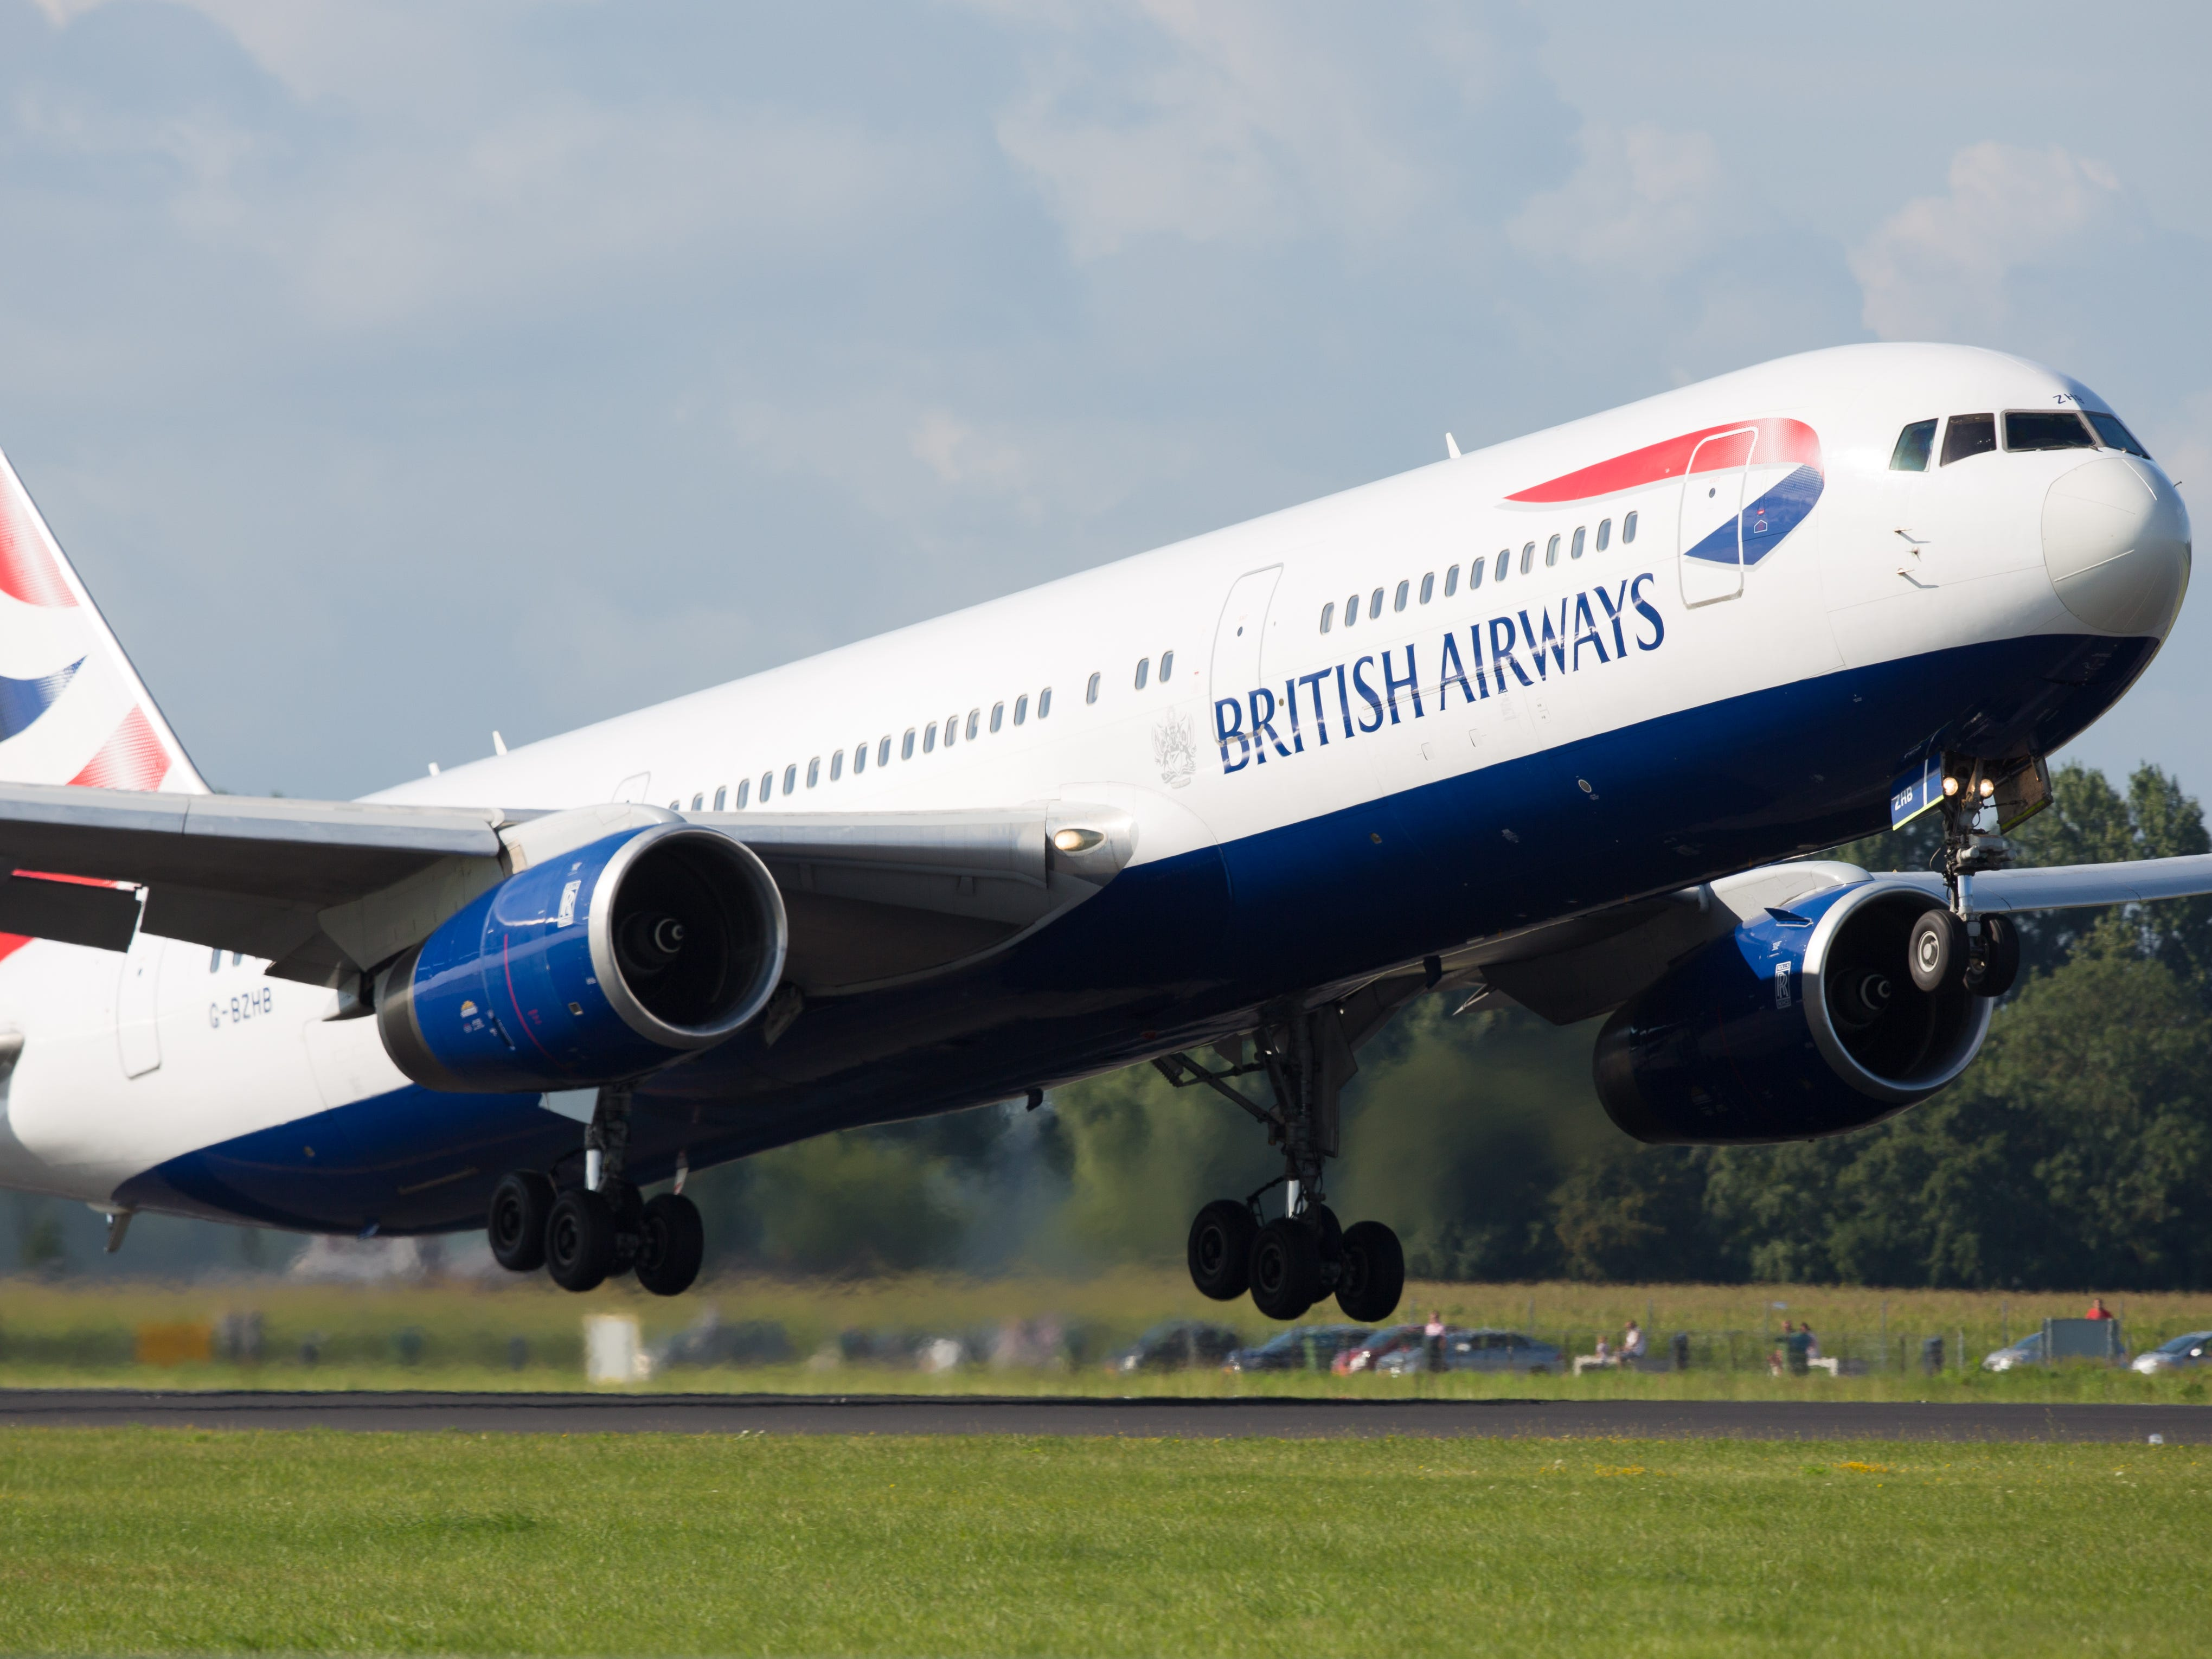 British Airways retires its last Boeing 767 widebody jet